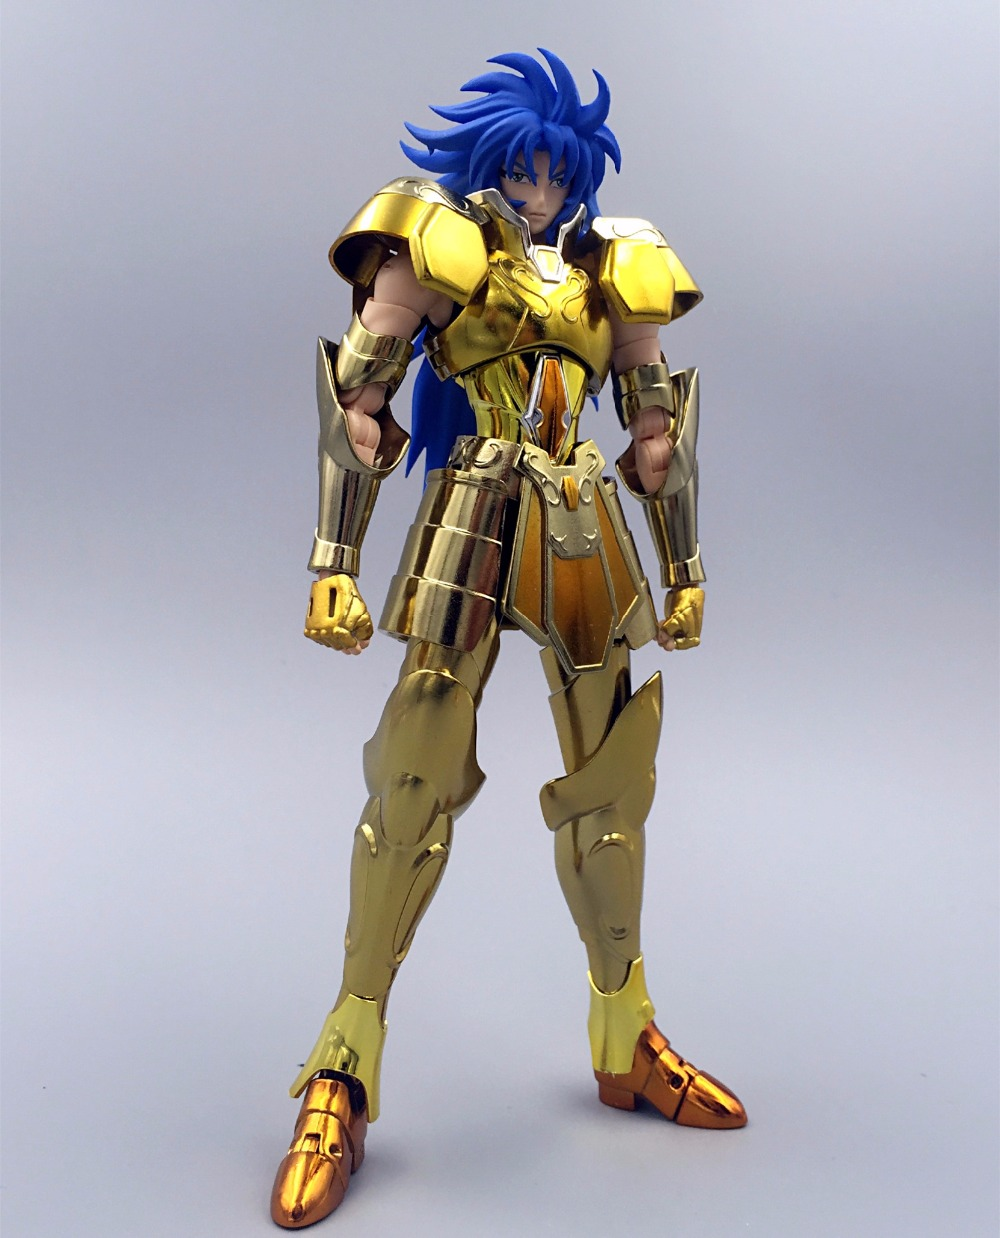 ST S Temple MC Metal Club Saint Seiya Cloth Myth EX Gold Gemini Saga model metal